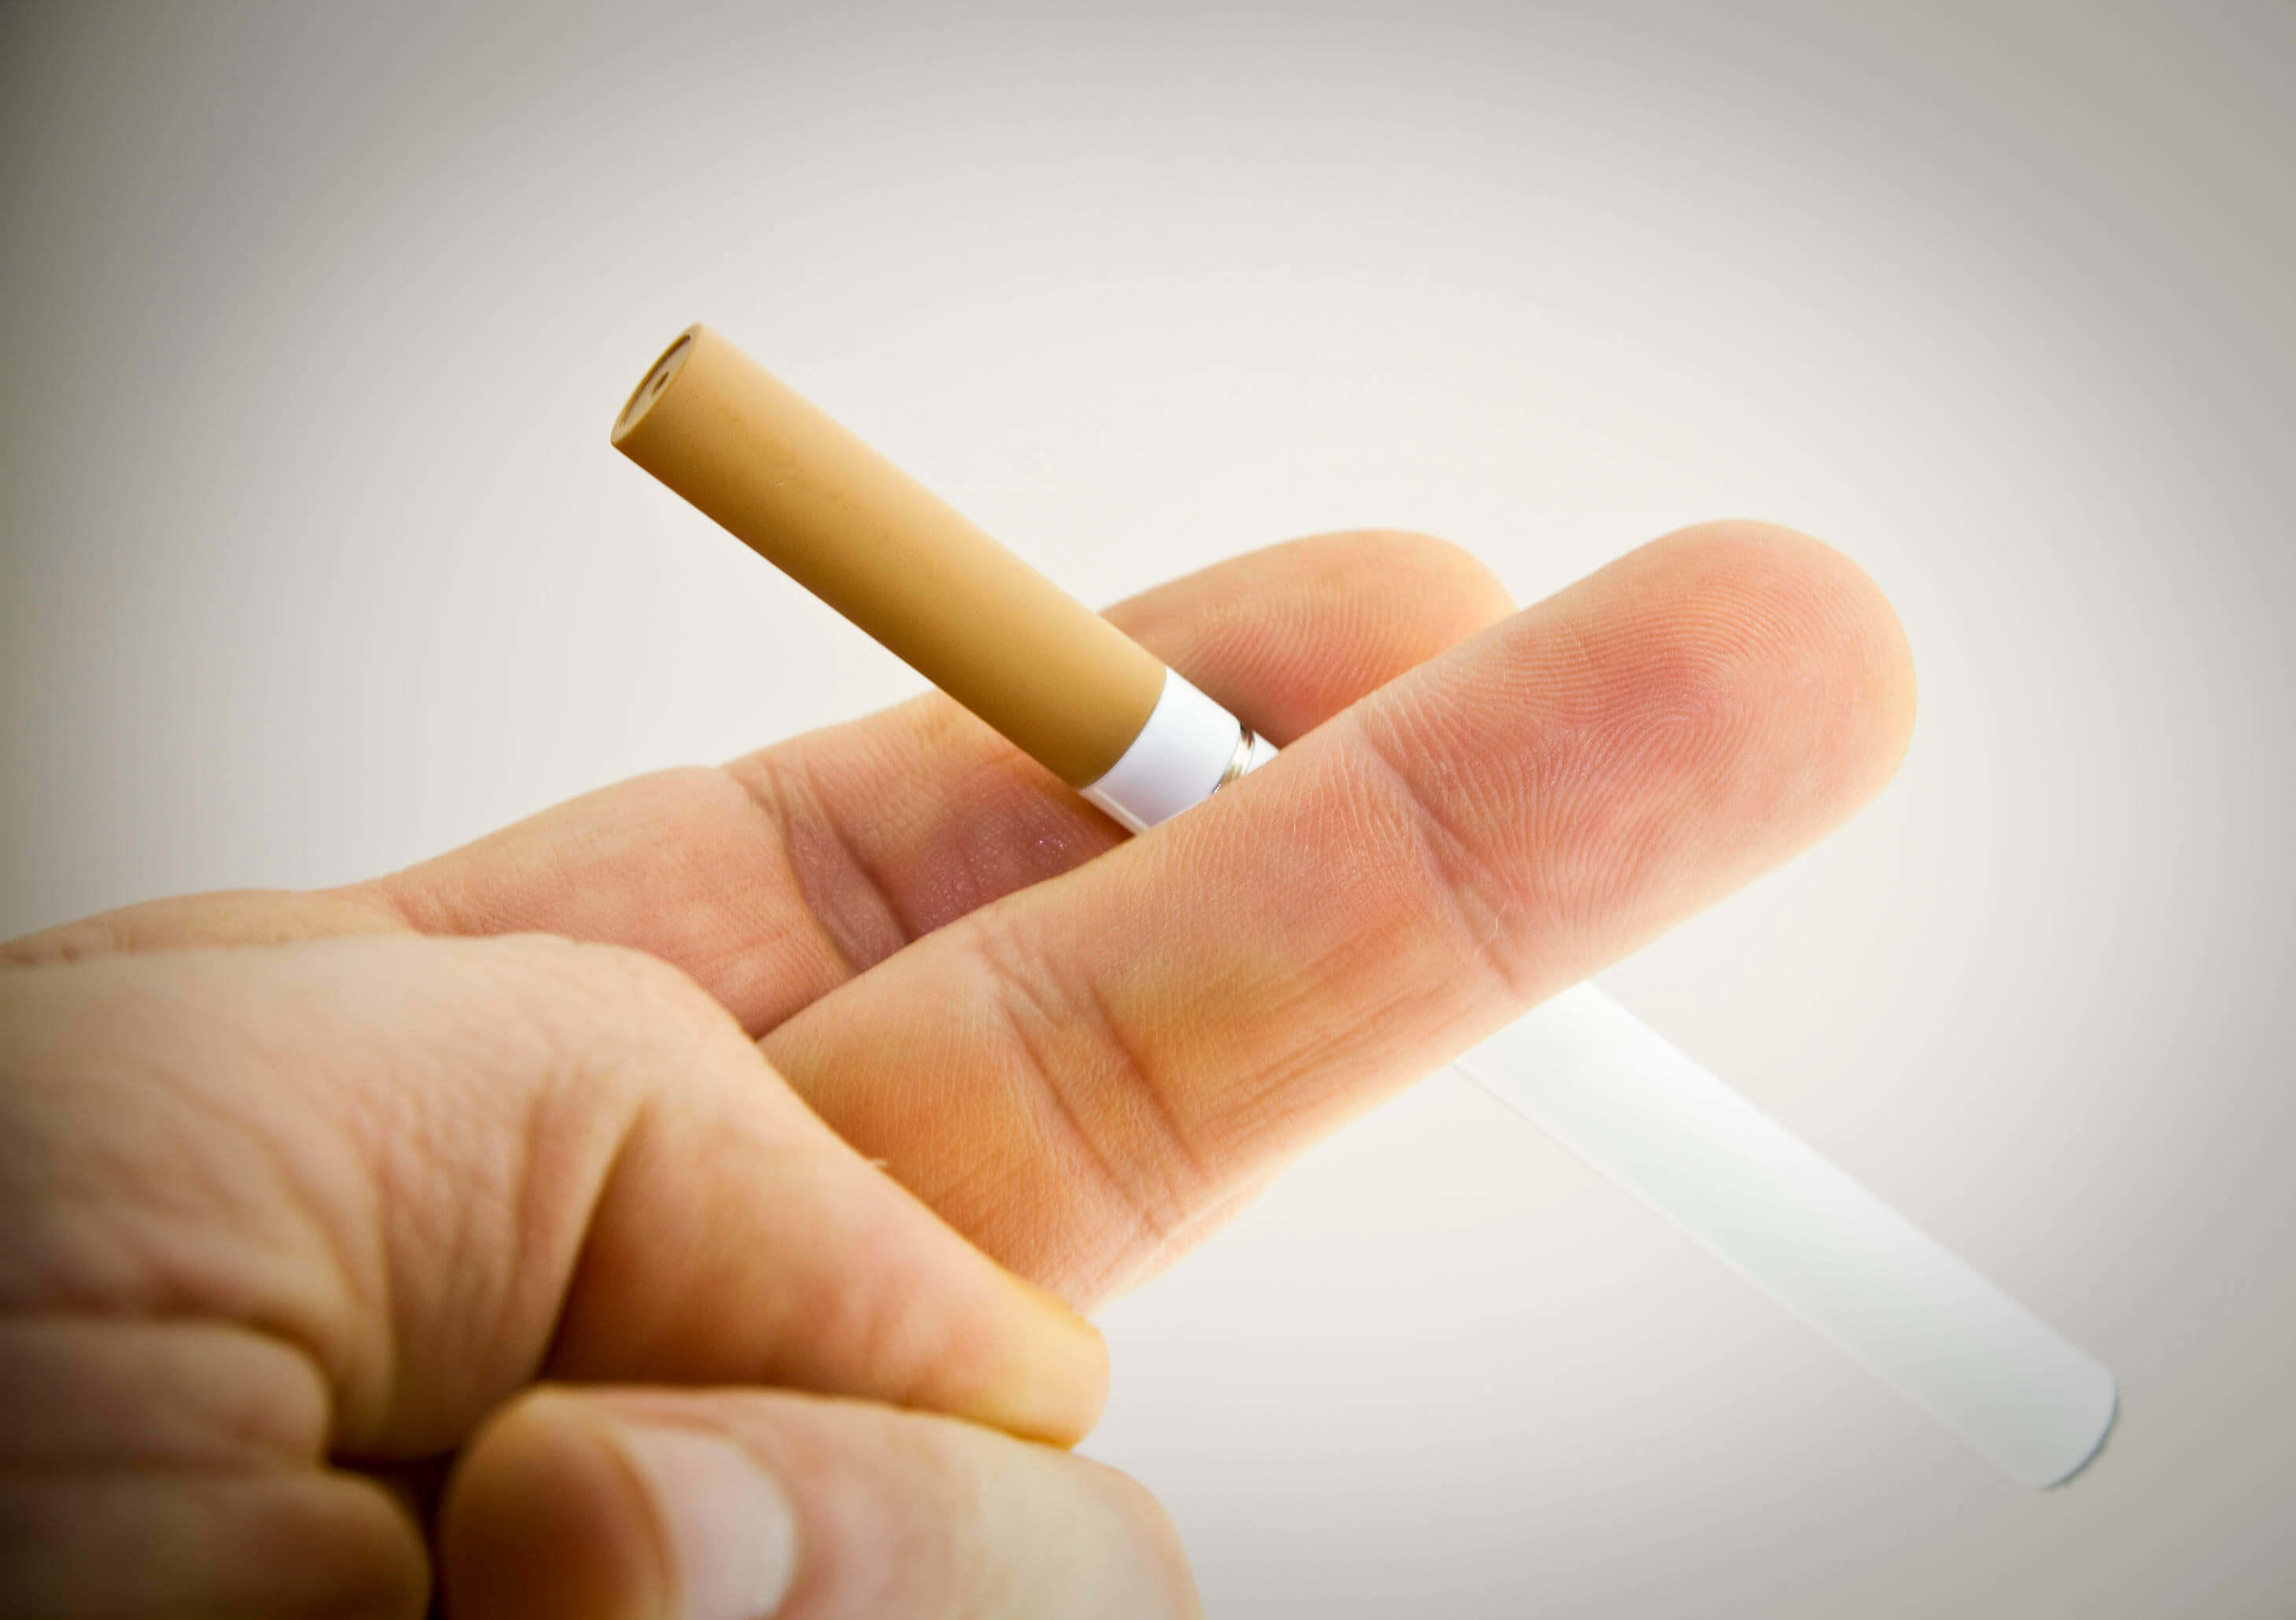 Hand with an e-cigarette